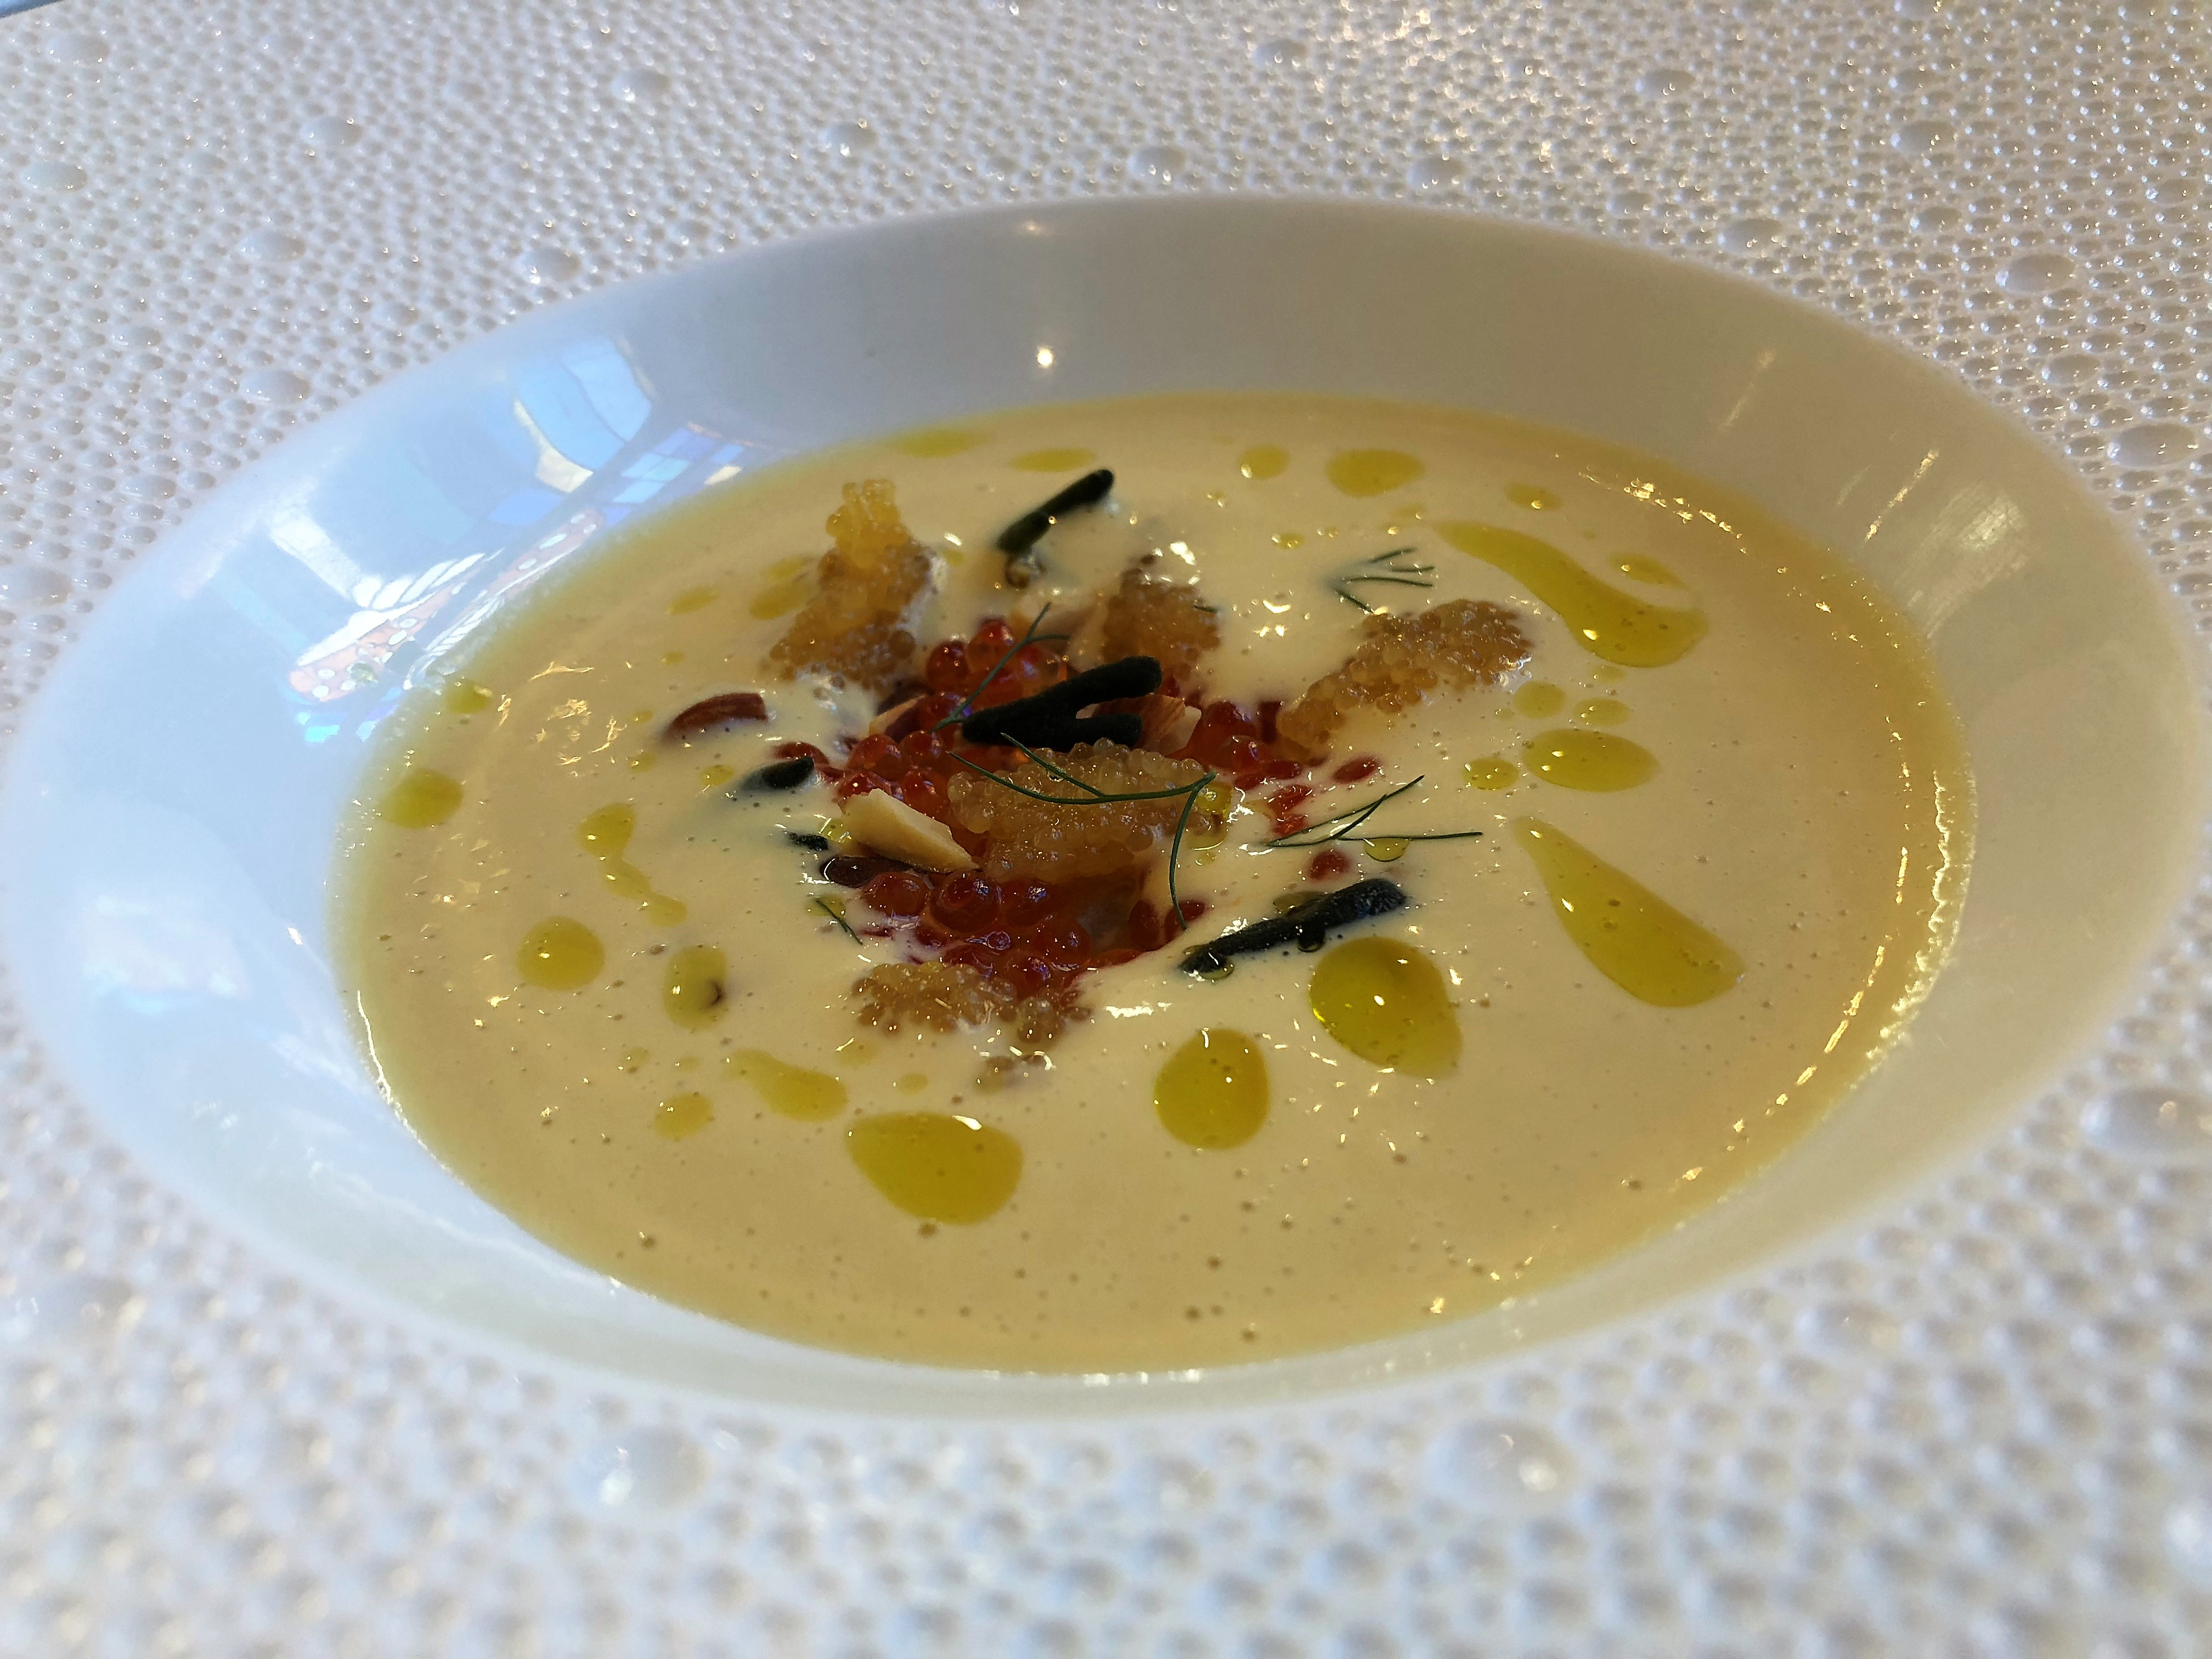 Claude Bosi at Bibendum, London